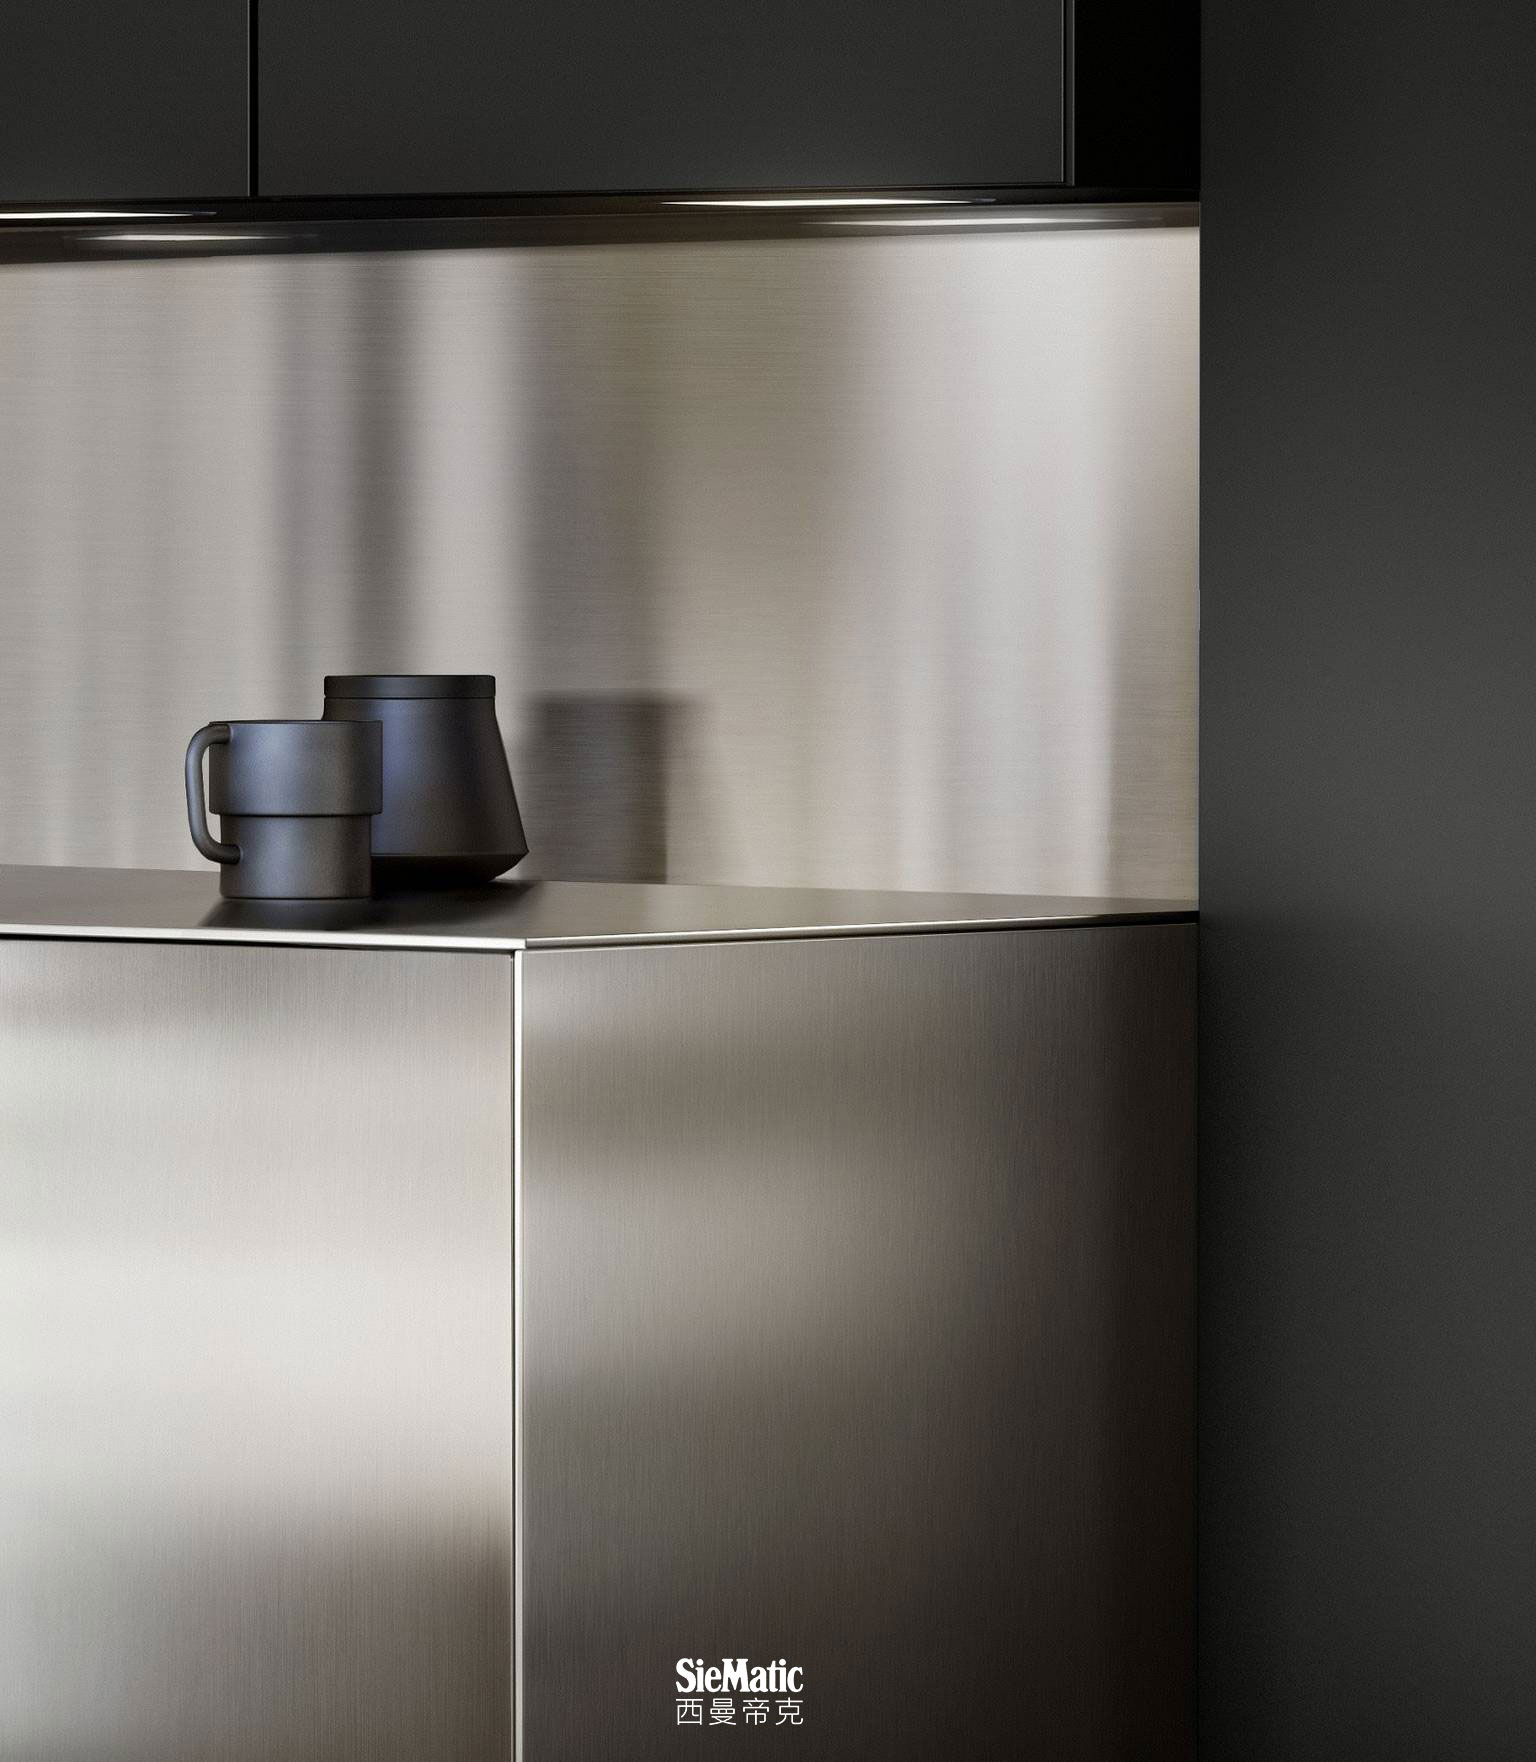 SieMatic countertops, side panels and backsplash in durable, professional stainless steel